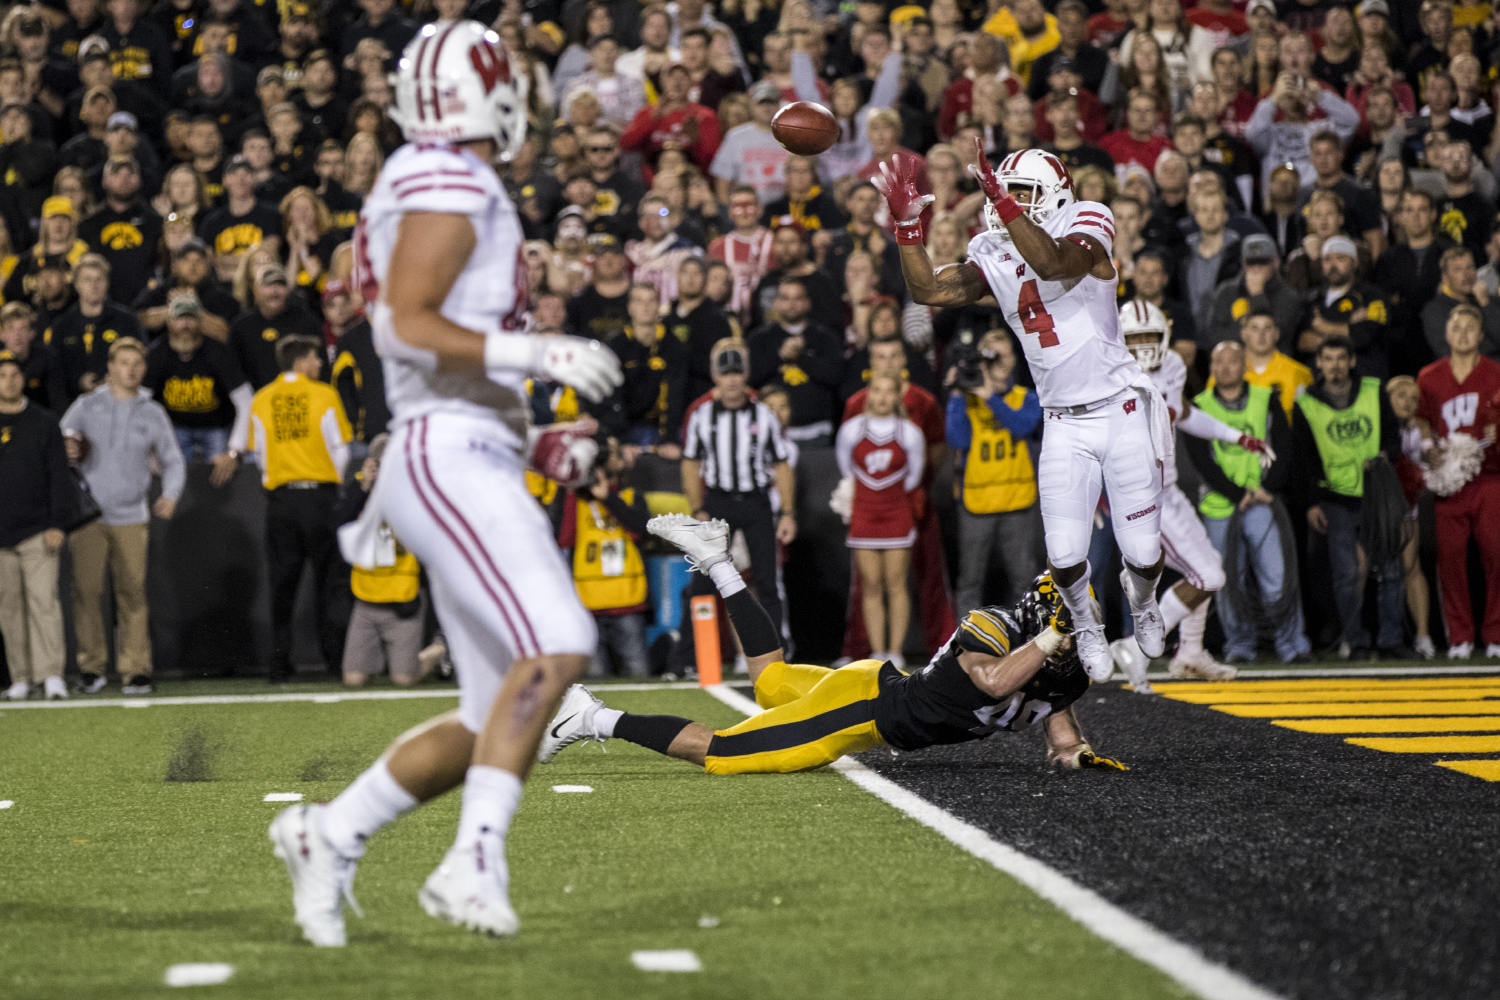 Wisconsin+wide+receiver+A.J.+Taylor+catches+a+touchdown+pass+during+Iowa%27s+game+against+Wisconsin+at+Kinnick+Stadium+on+Saturday%2C+Sept.+22%2C+2018.+The+Badgers+defeated+the+Hawkeyes%2C+28-17.